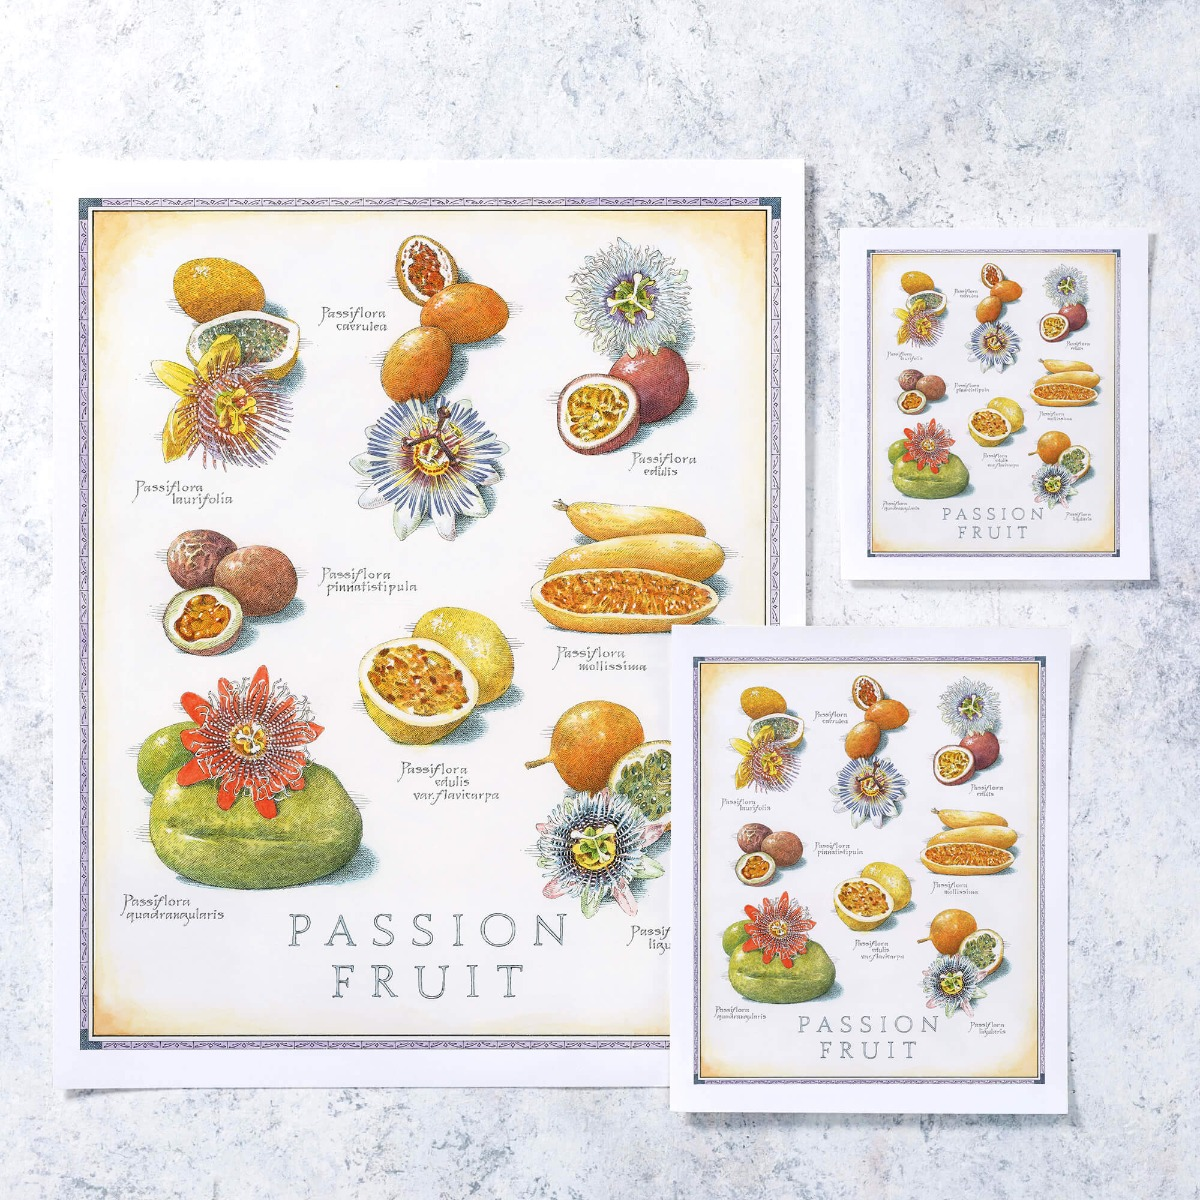 Cook's Illustrated Unframed Print: Passion Fruit